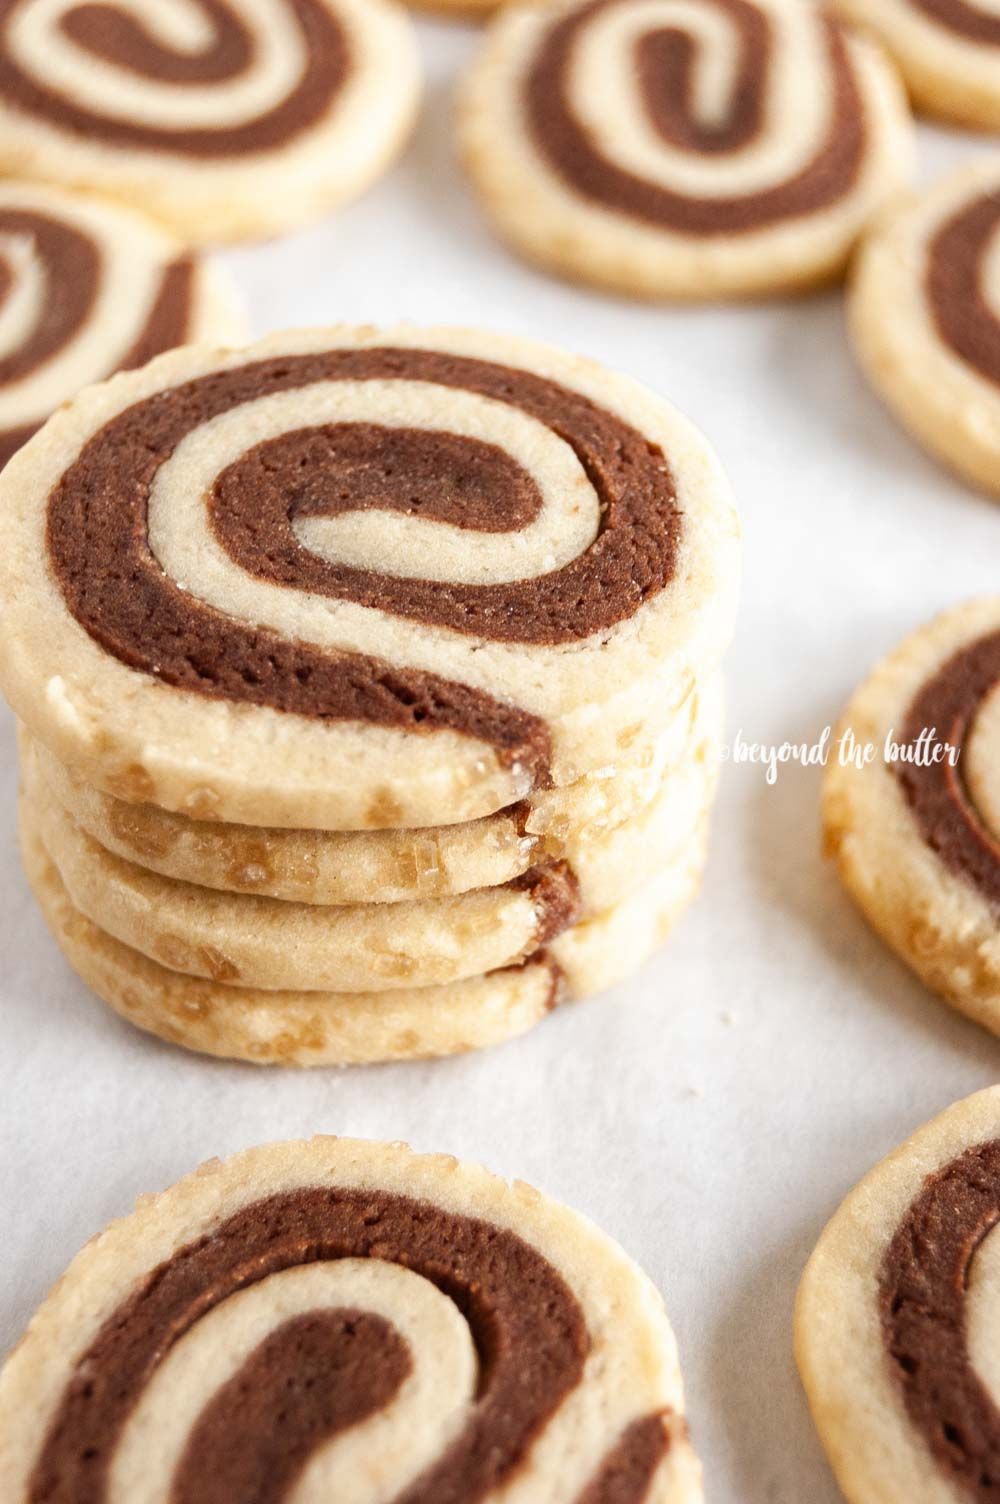 Close up image of small stack of Chocolate Pinwheel Cookies | All images © Beyond the Butter™